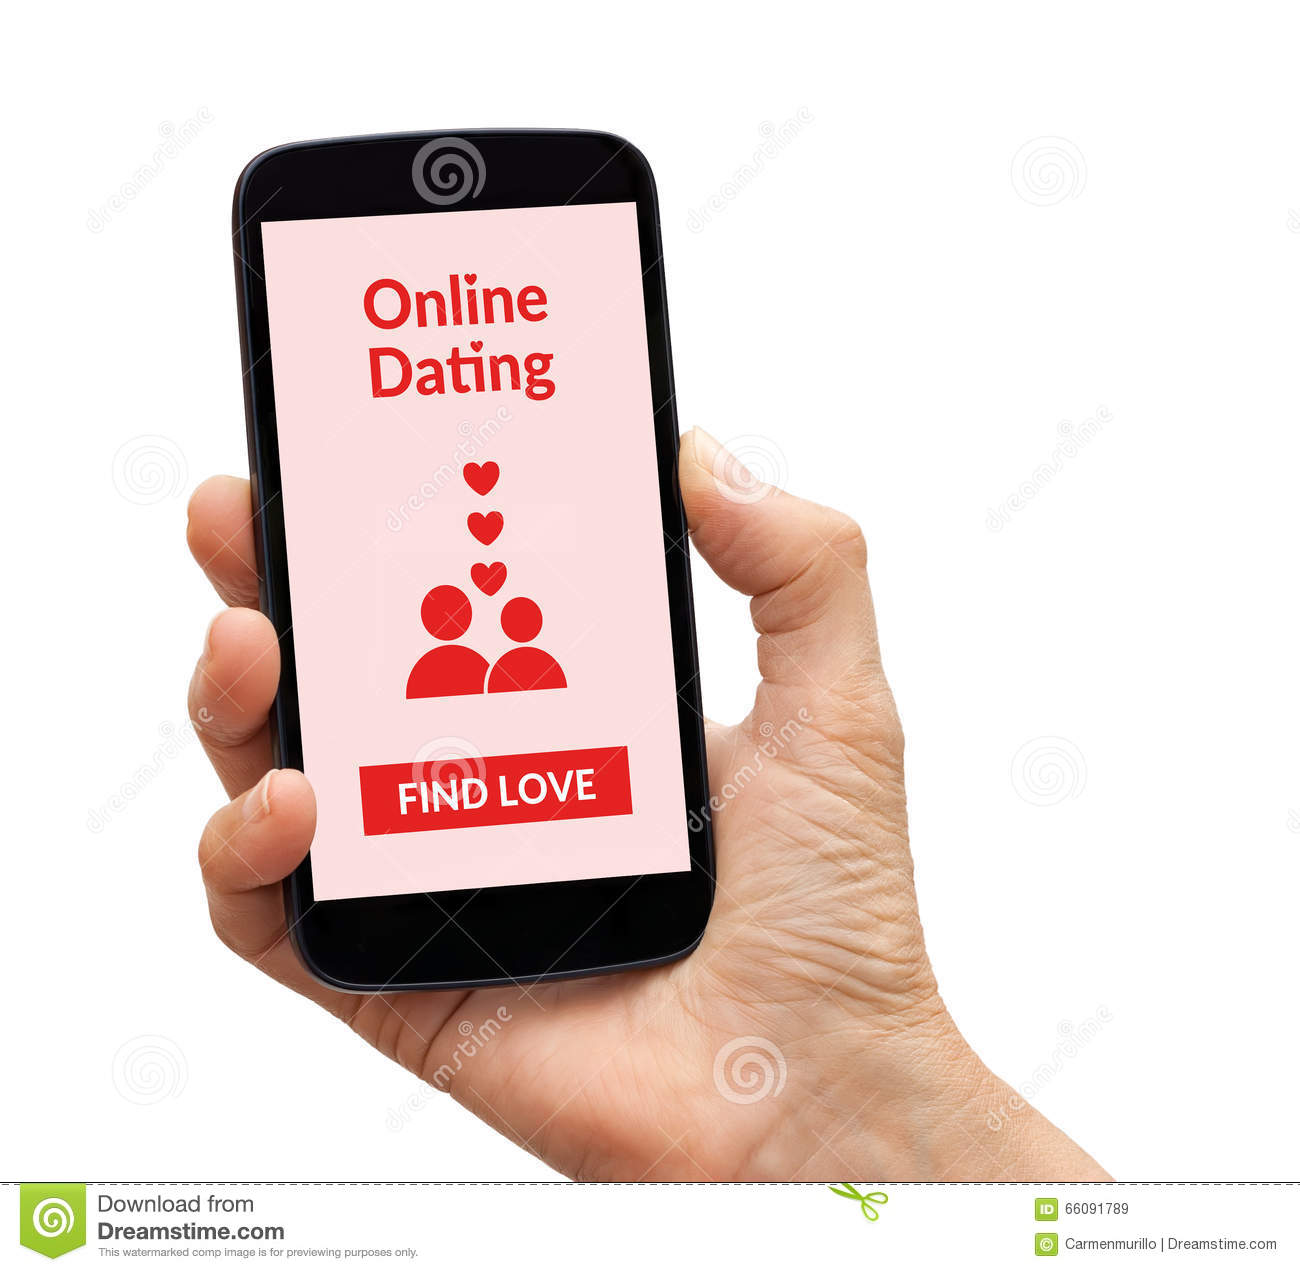 white city online hookup & dating Meet white city singles online & chat in the forums dhu is a 100% free dating site to find personals & casual encounters in white city.